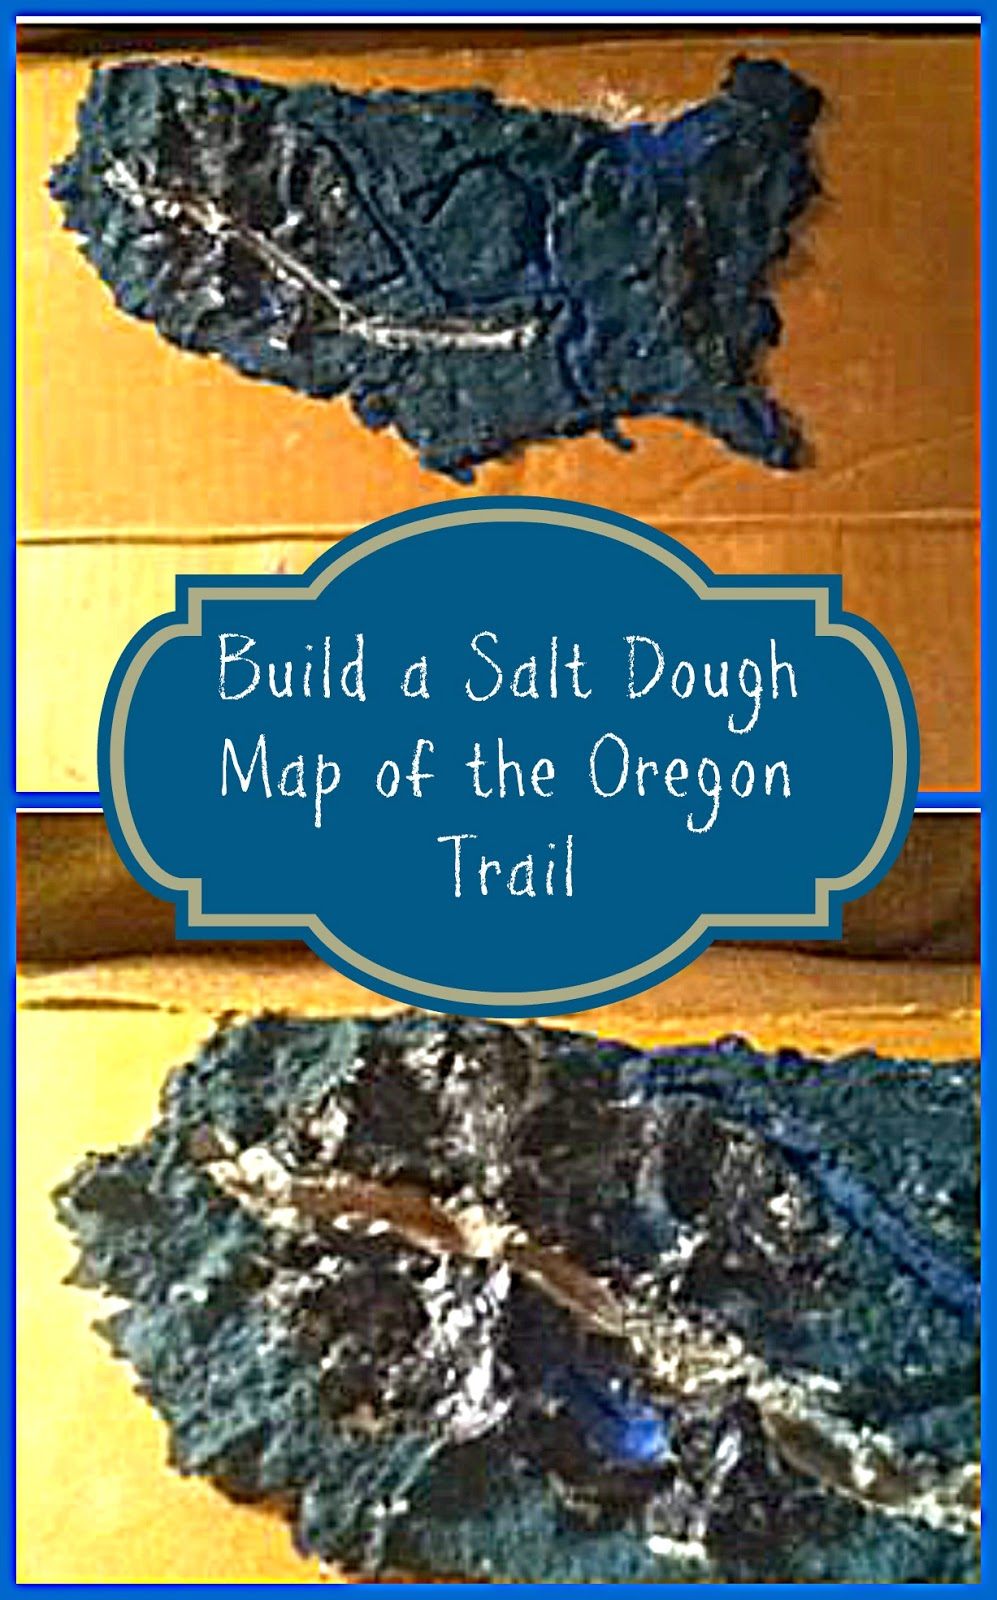 Building A Salt Dough Map Of The Oregon Trail As Part Of Our Study On The American Westward Expansion